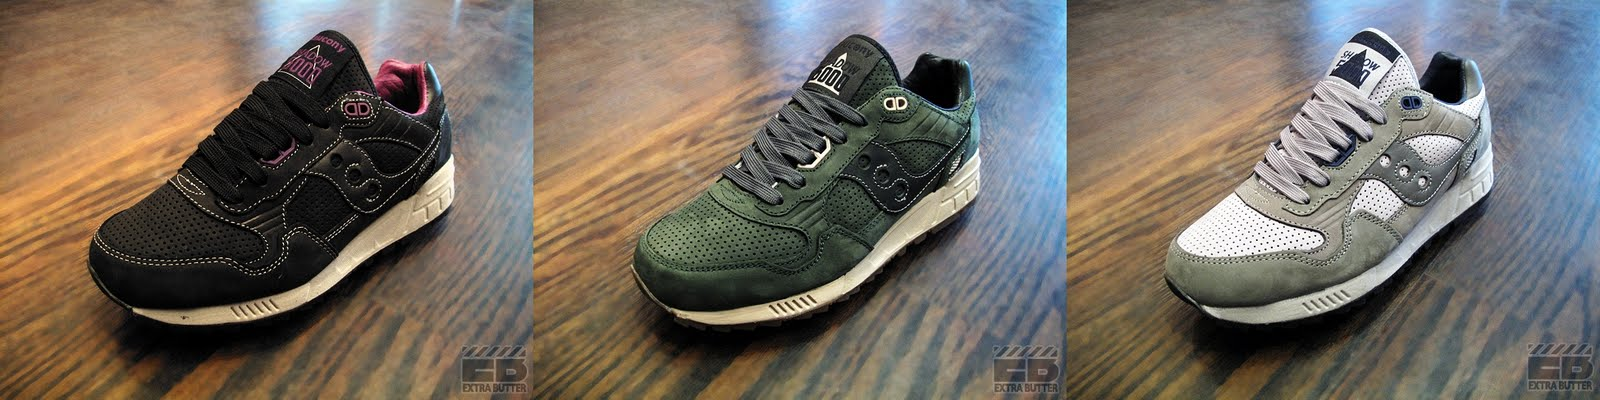 new concept fe5a3 f694e saucony shadow 5000 luxury pack